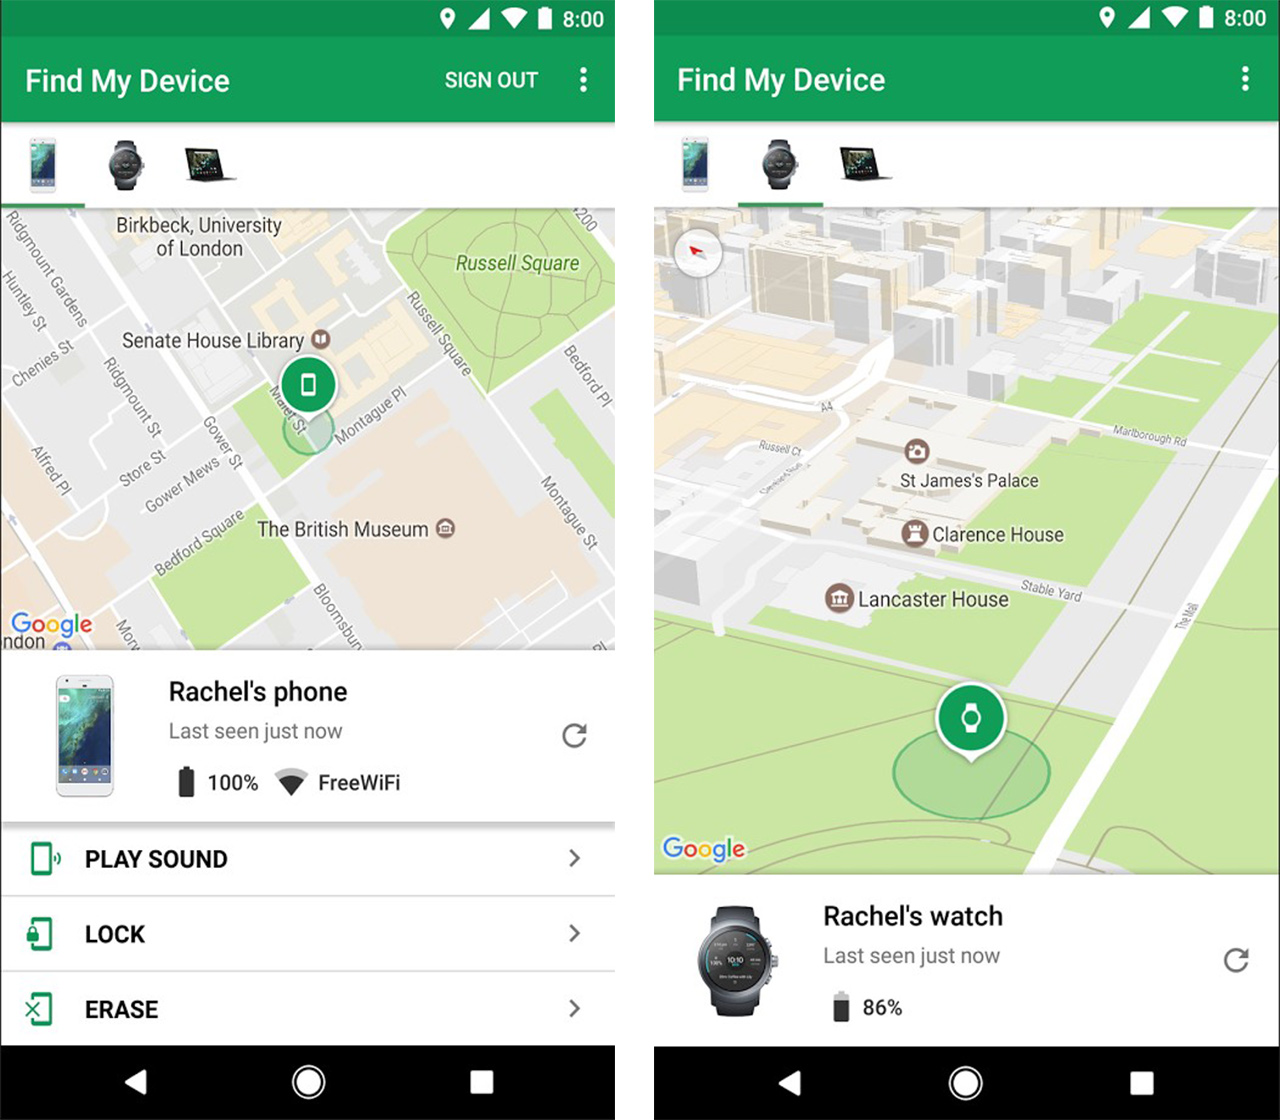 Screenshots of Google's redesigned Find My Device app